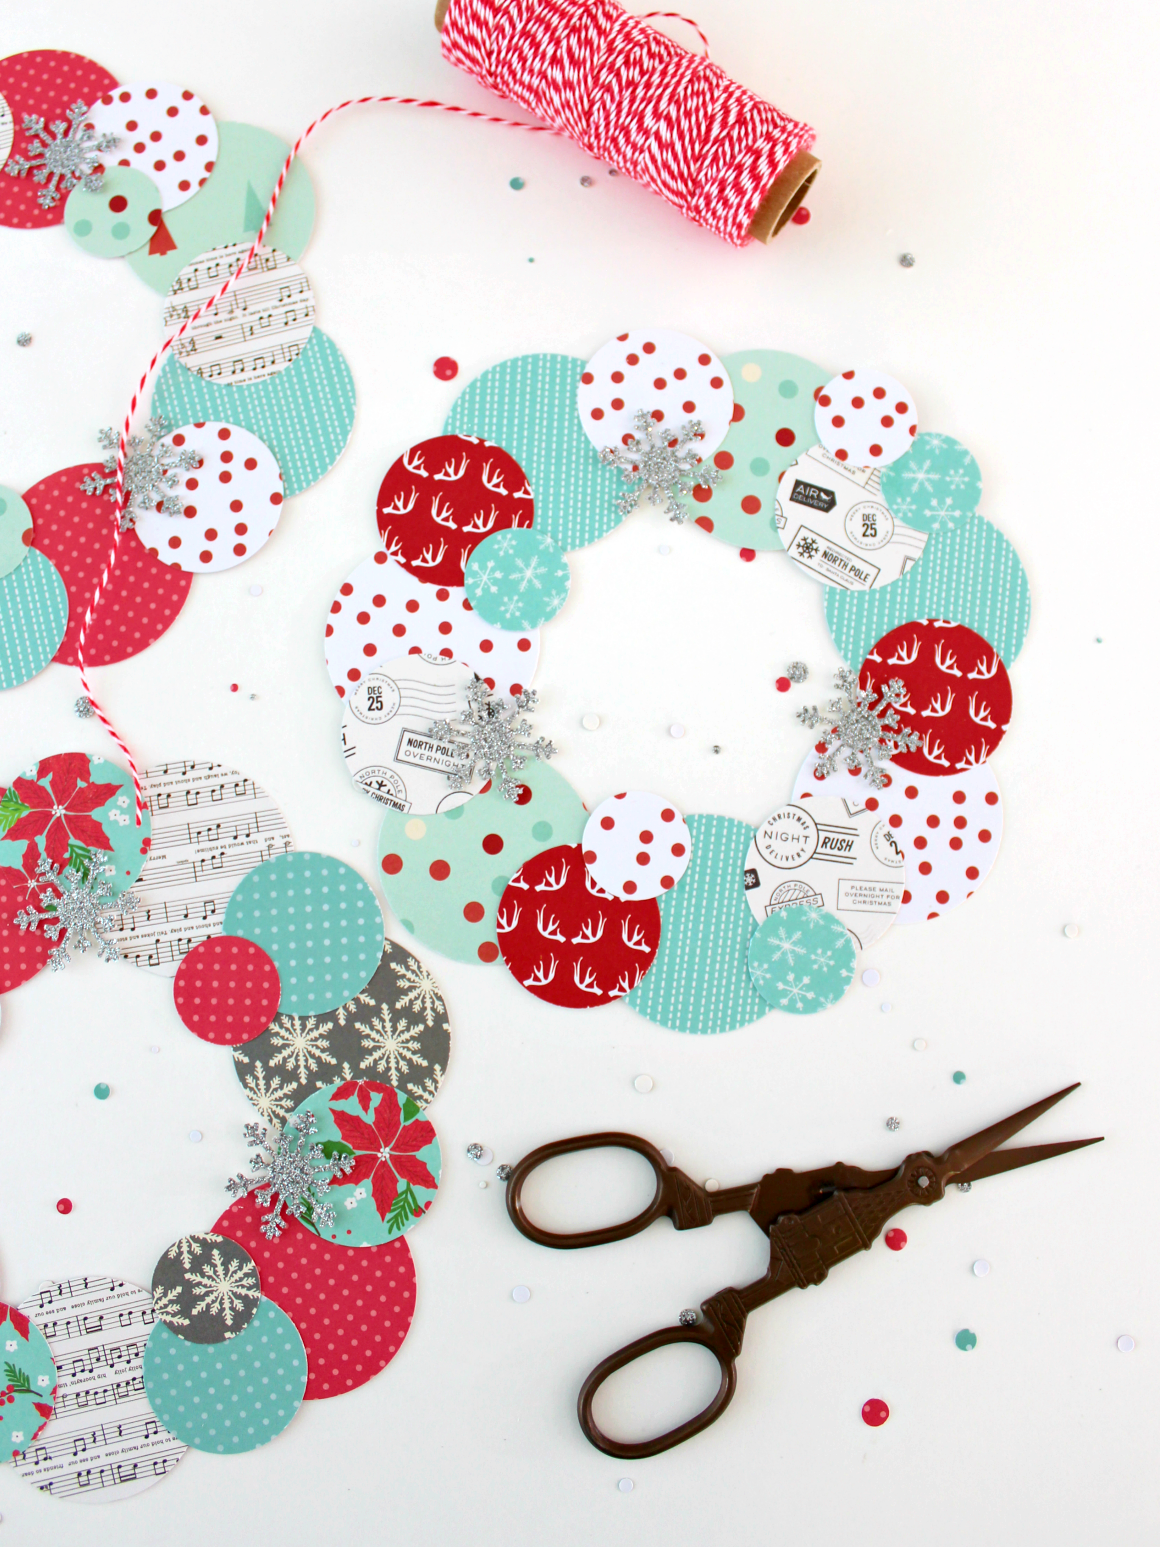 HOLIDAY PAPER WREATHS